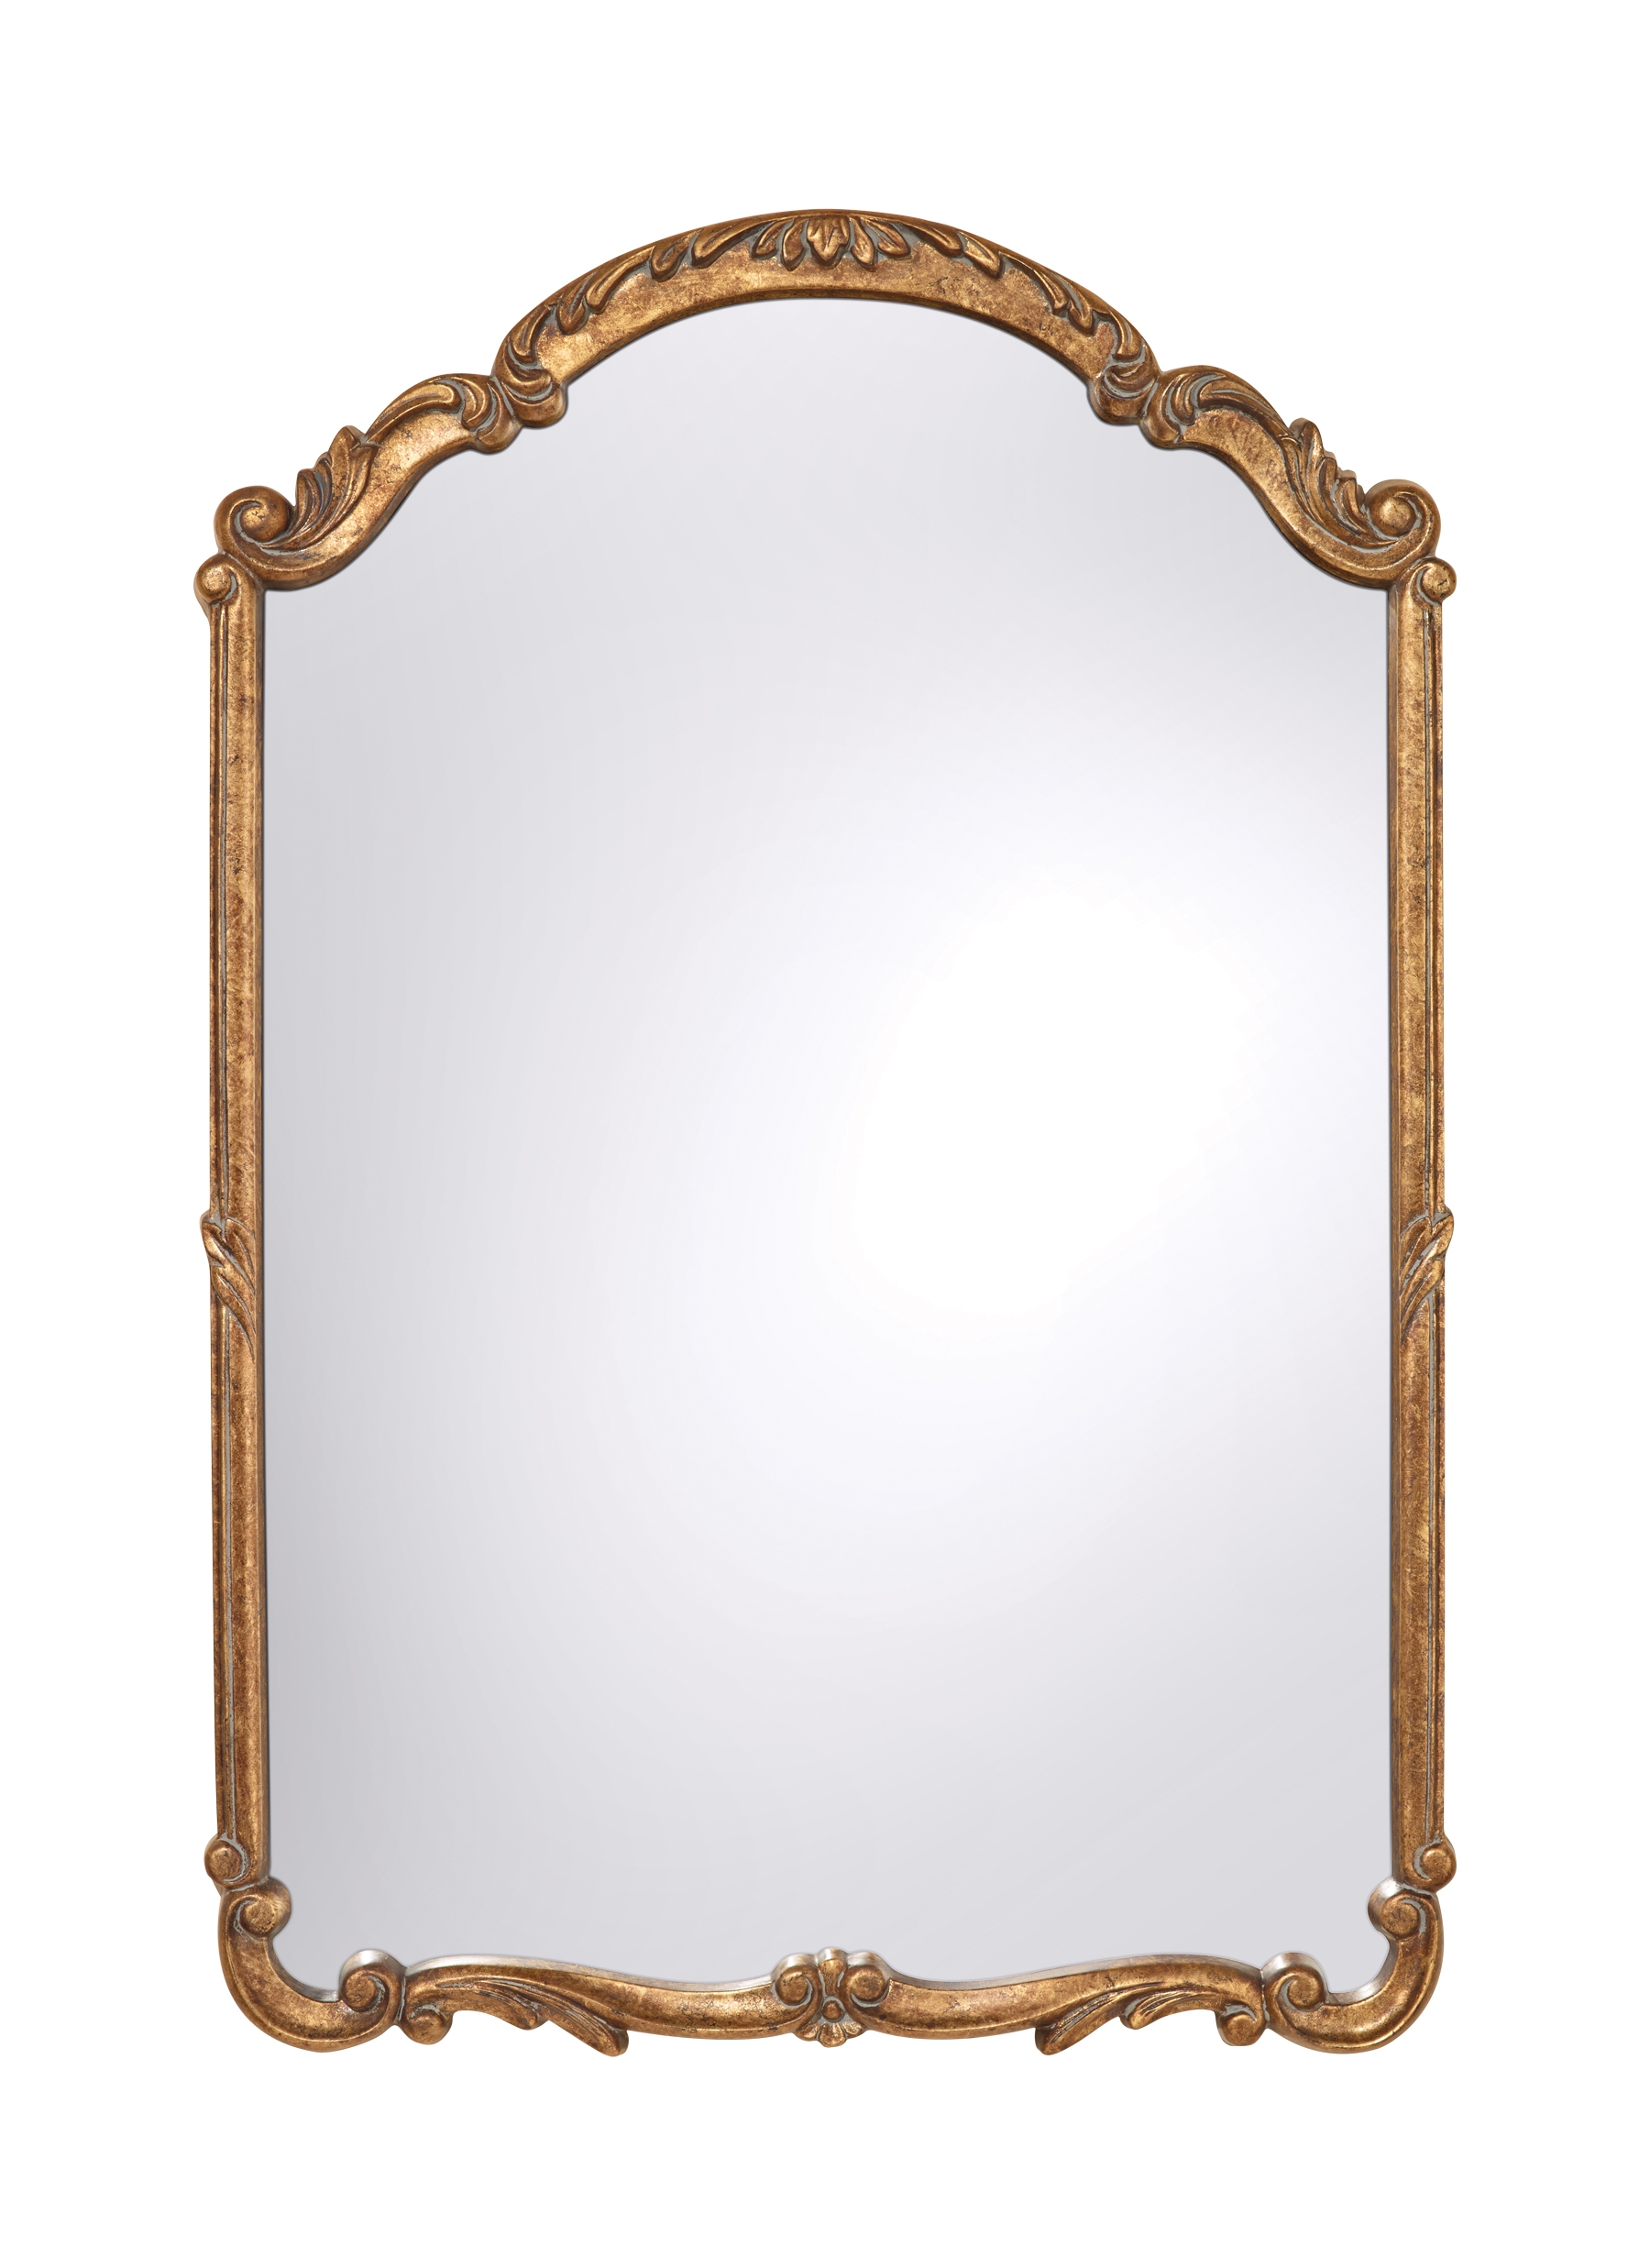 Antique Gold Rectangular Mirror Best Antique 2017 Within Antique Gold Mirrors (Image 1 of 15)